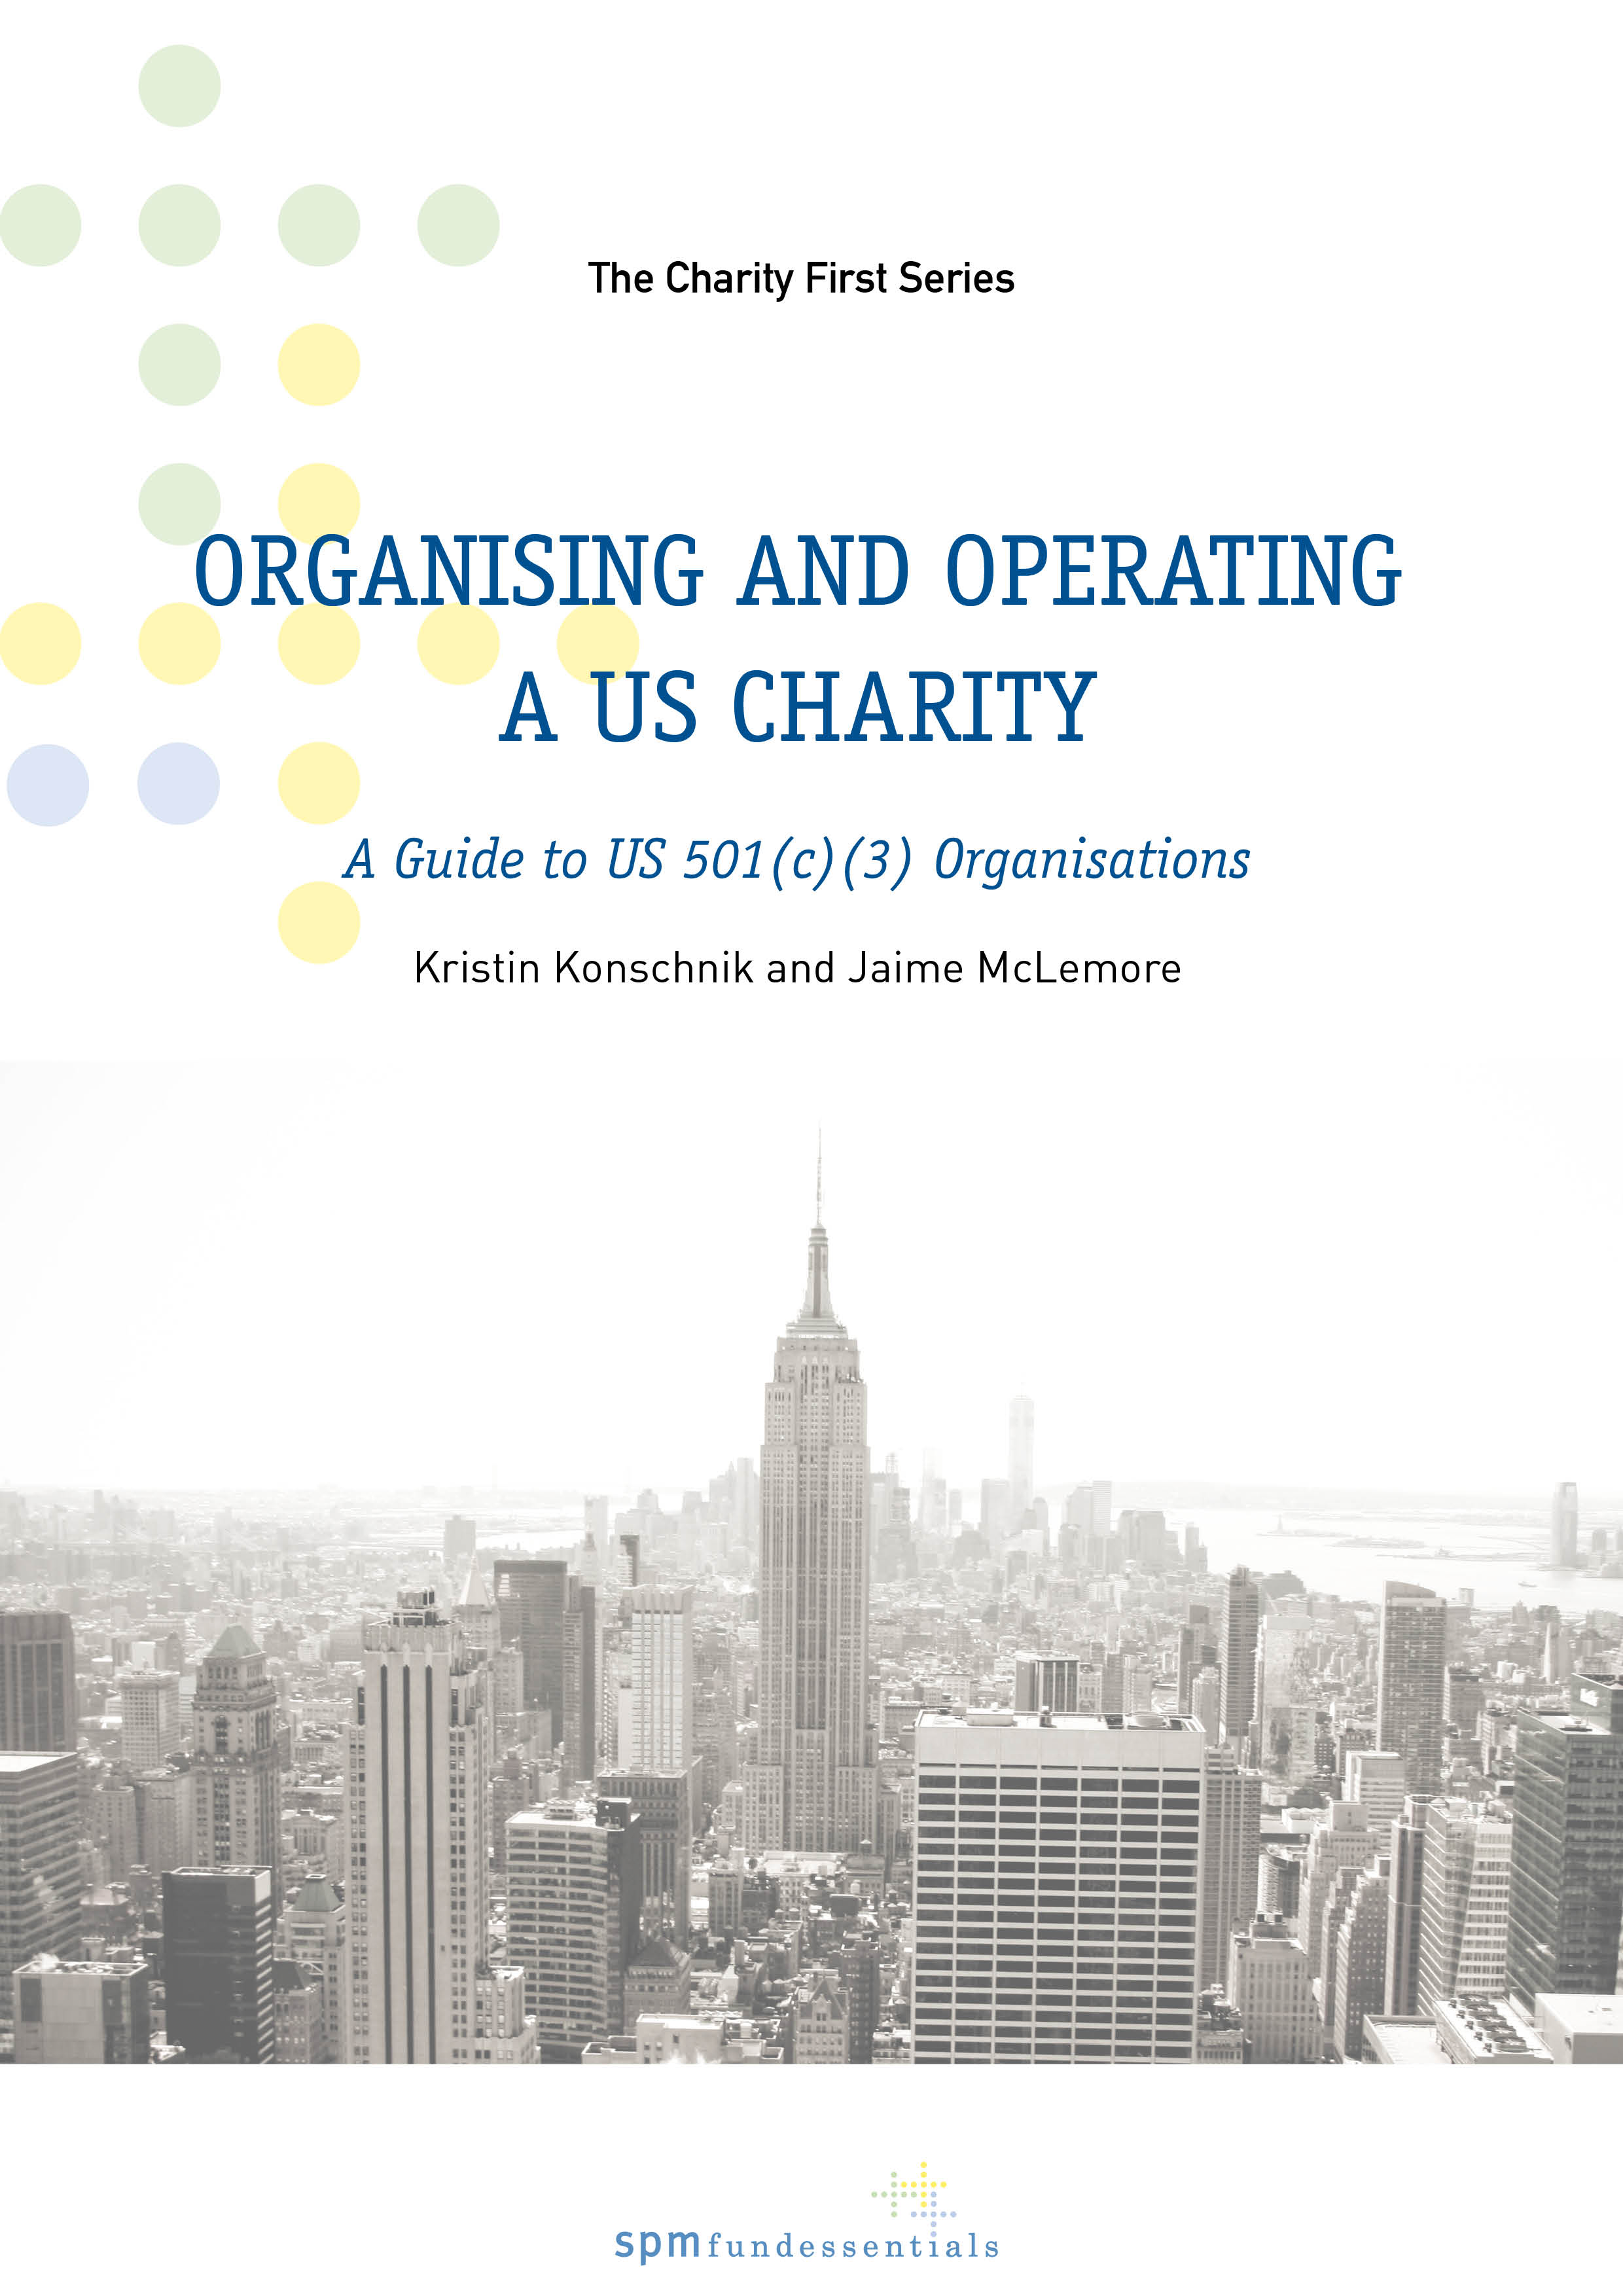 Organising and Operating a US Charity - A Guide to US 501(c)(3) Organisations